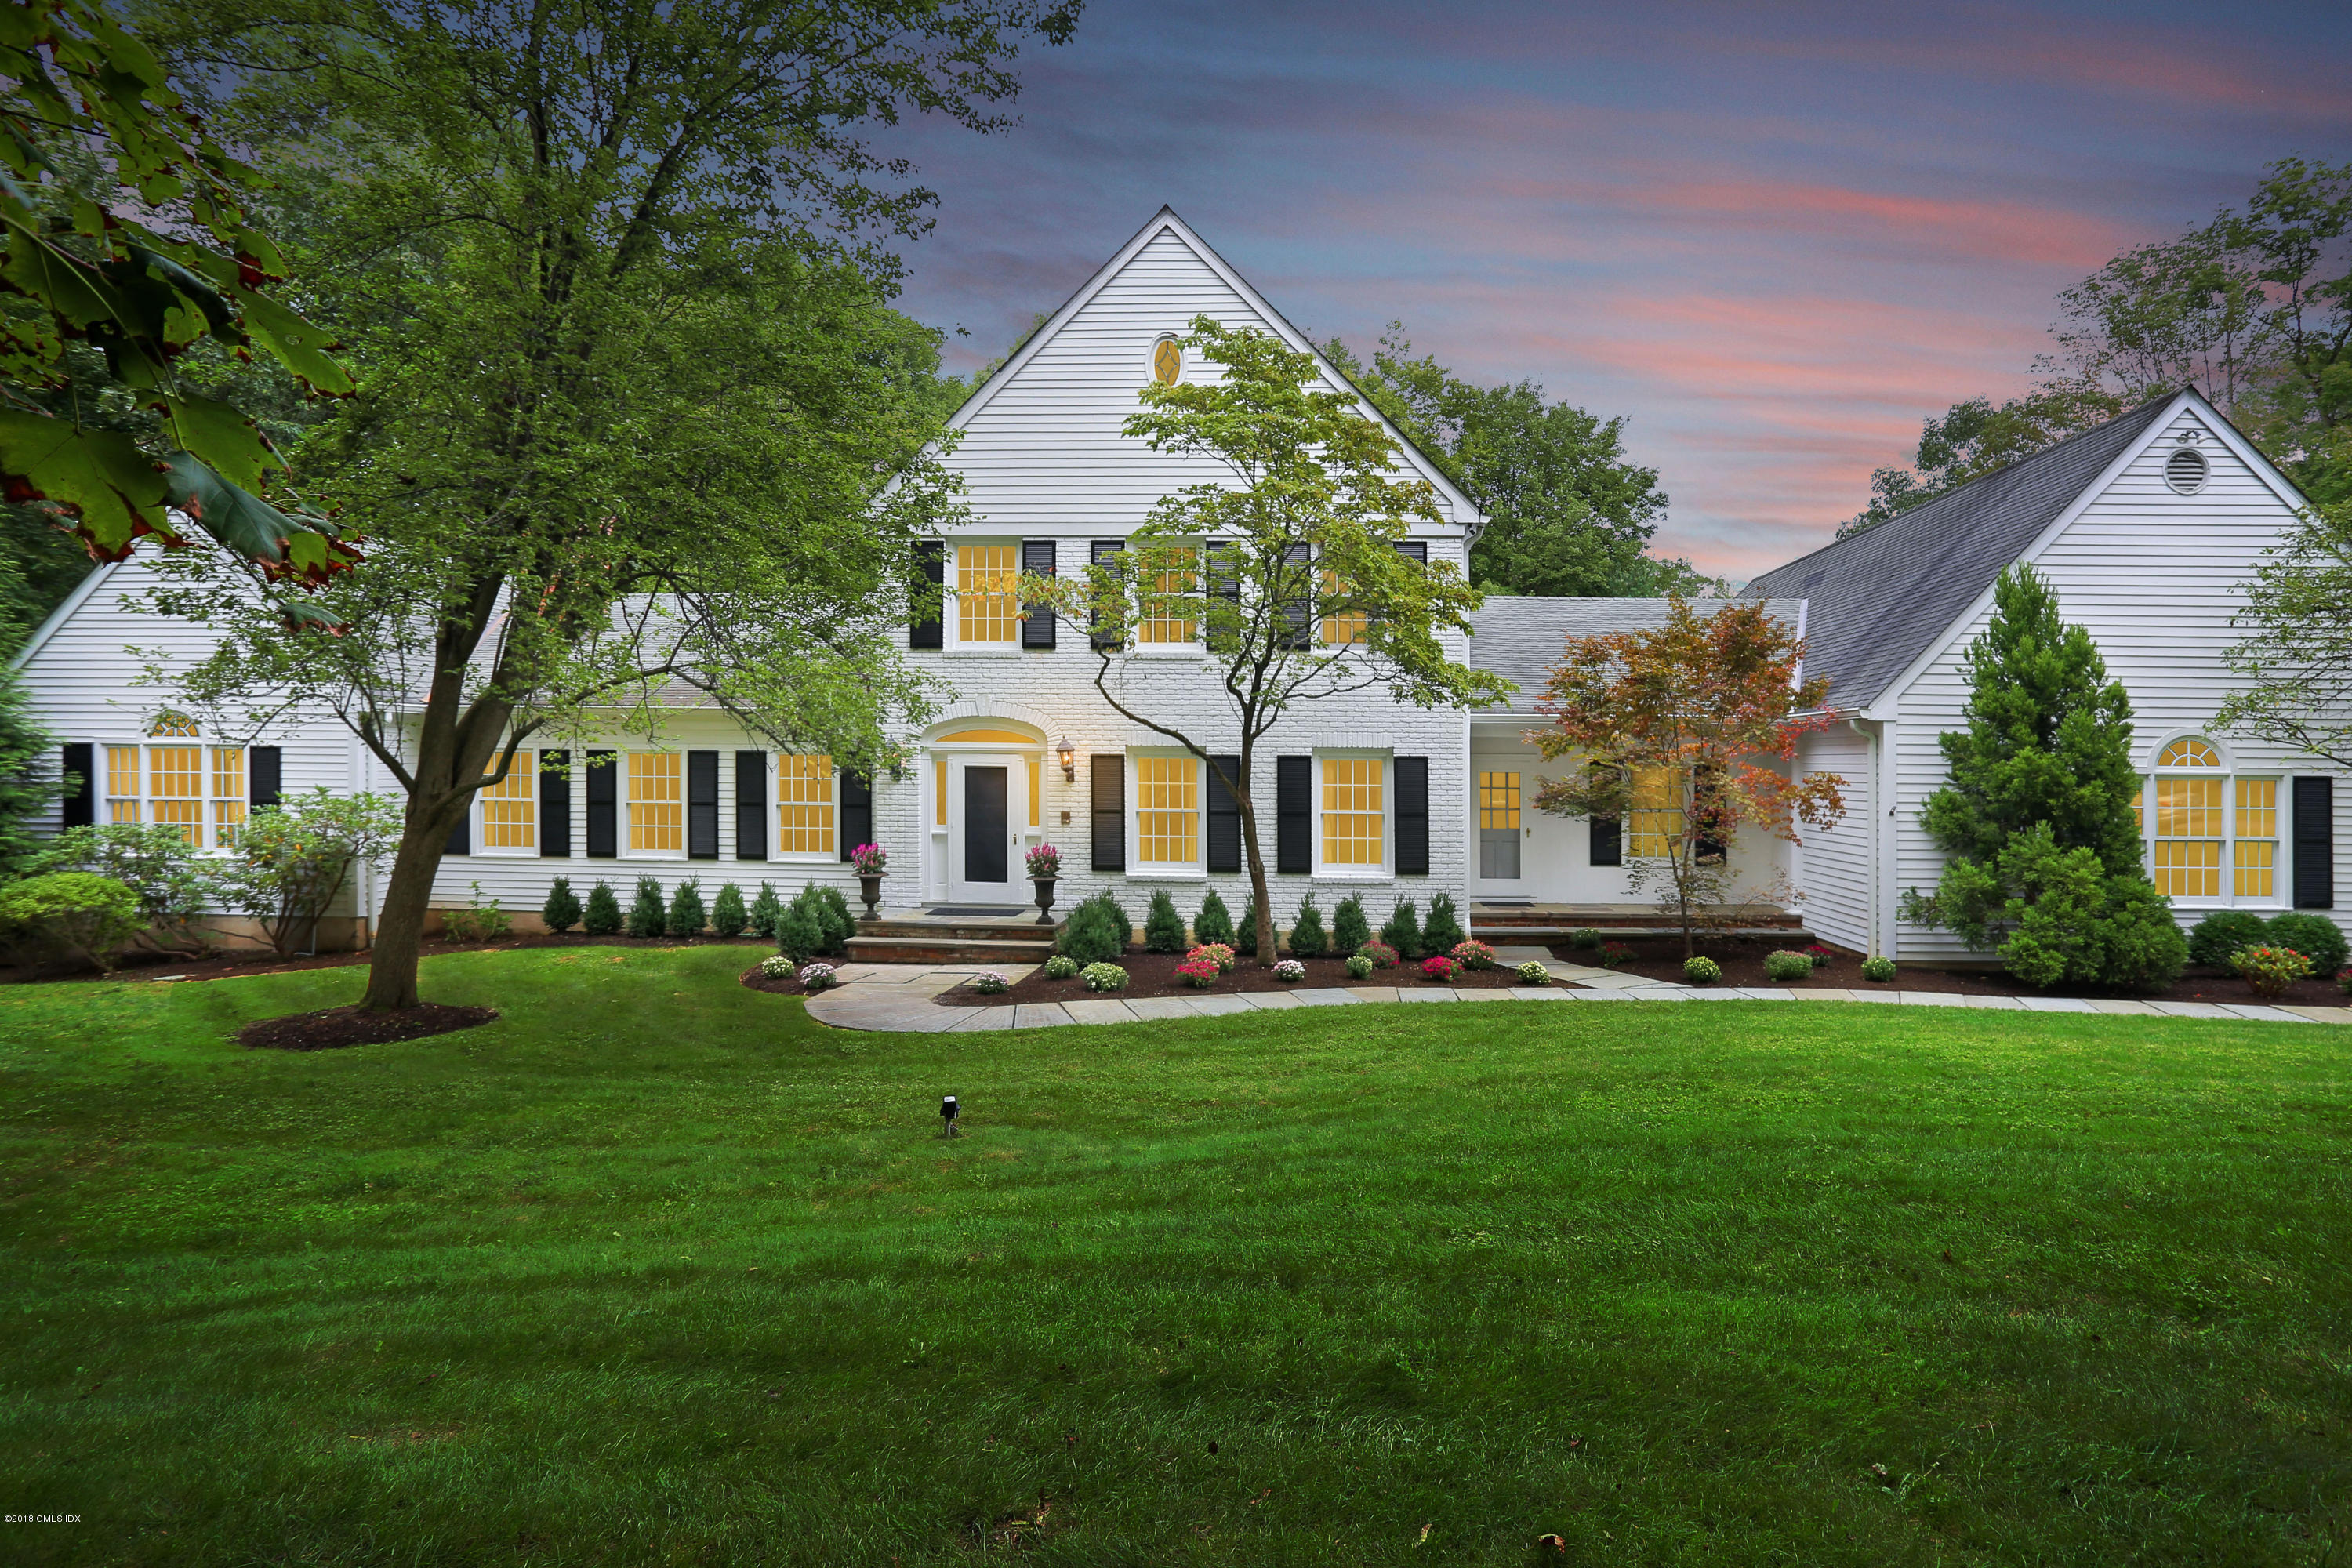 91 Sawmill Lane,Greenwich,Connecticut 06830,5 Bedrooms Bedrooms,4 BathroomsBathrooms,Single family,Sawmill,104477